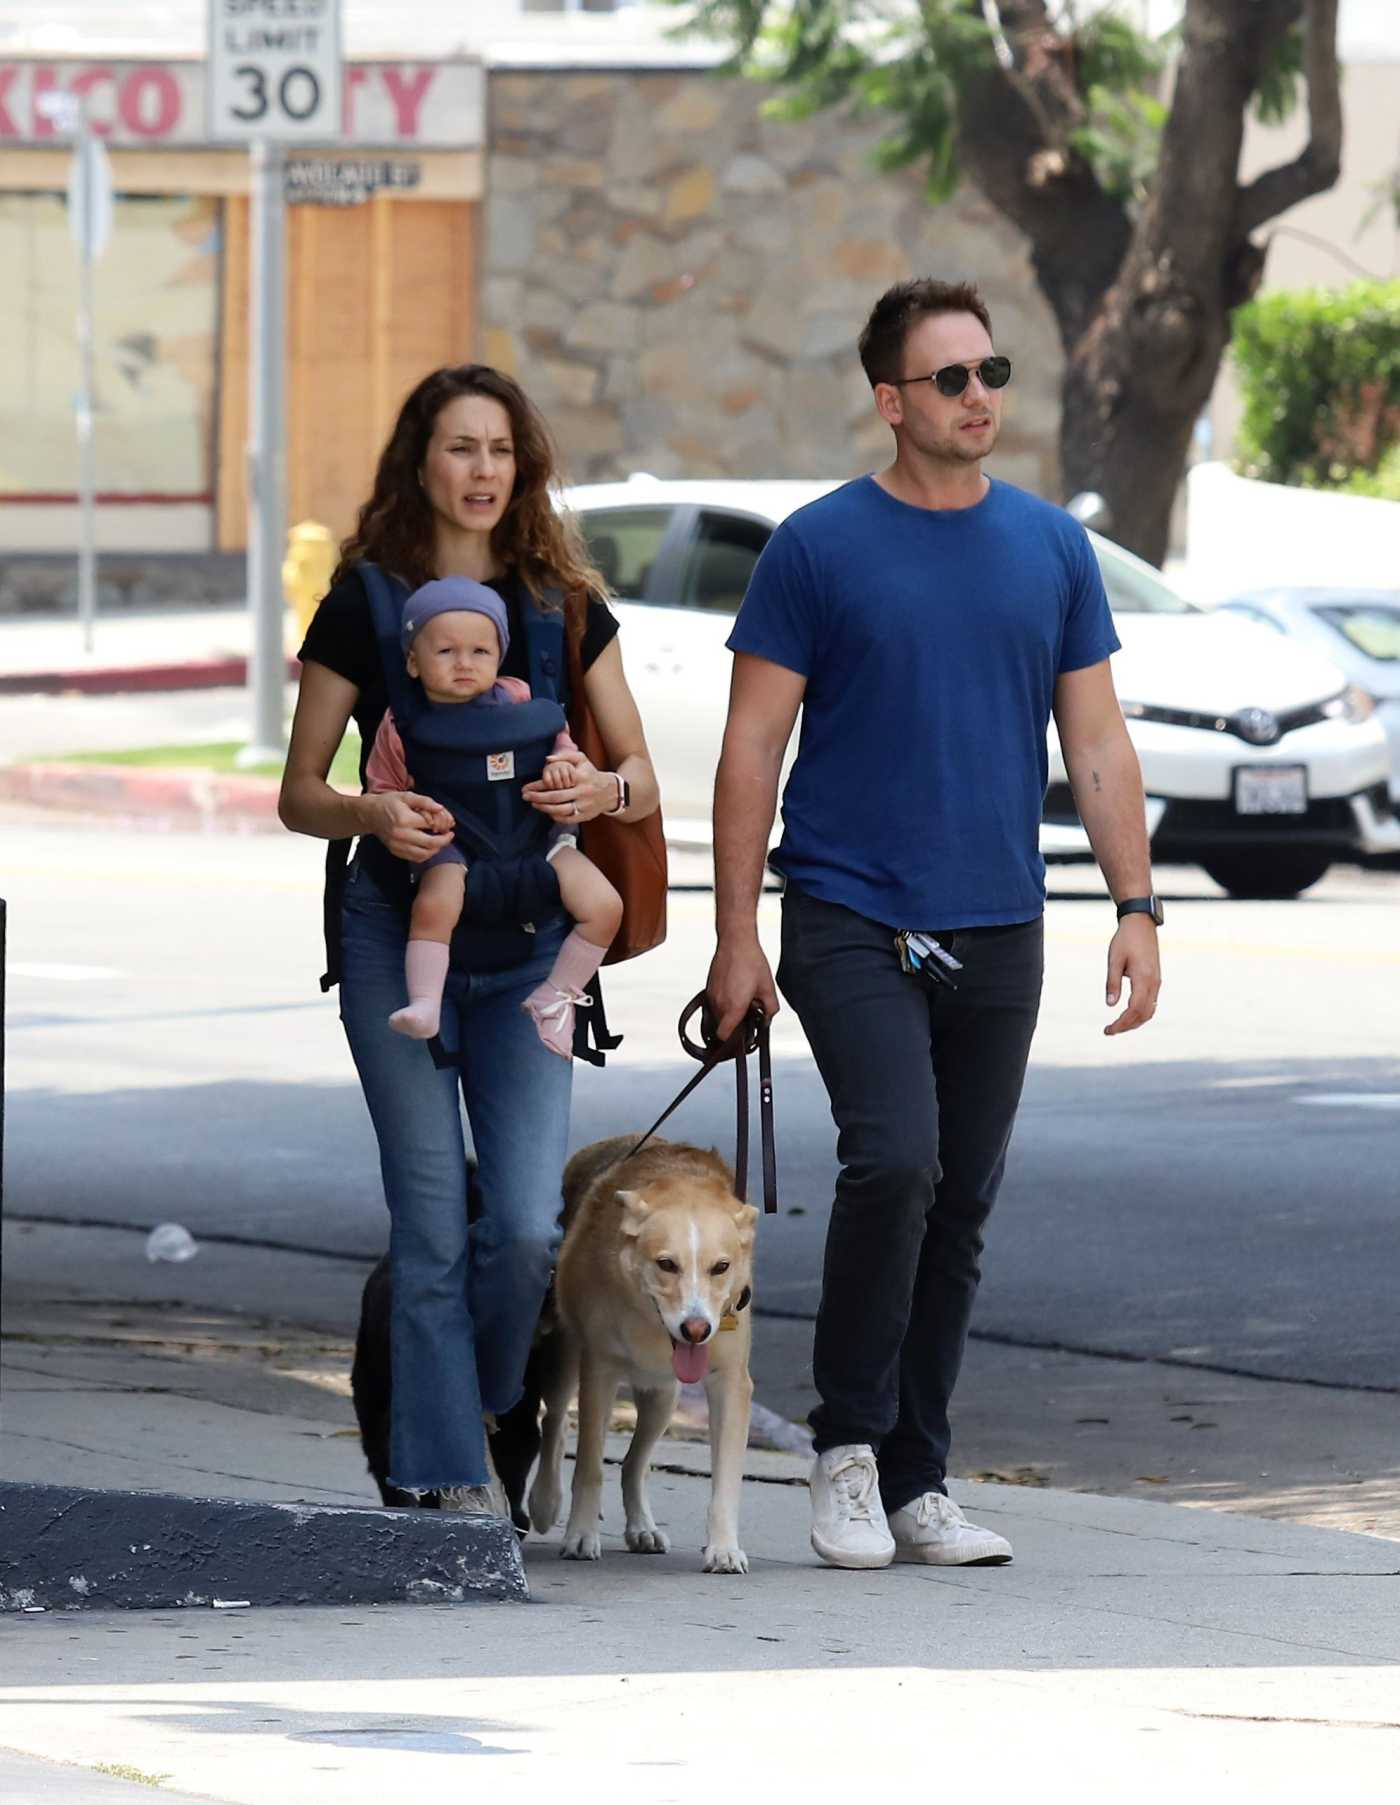 Troian Bellisario Walks Her Dogs Out with Patrick J. Adams in LA 07/05/2019